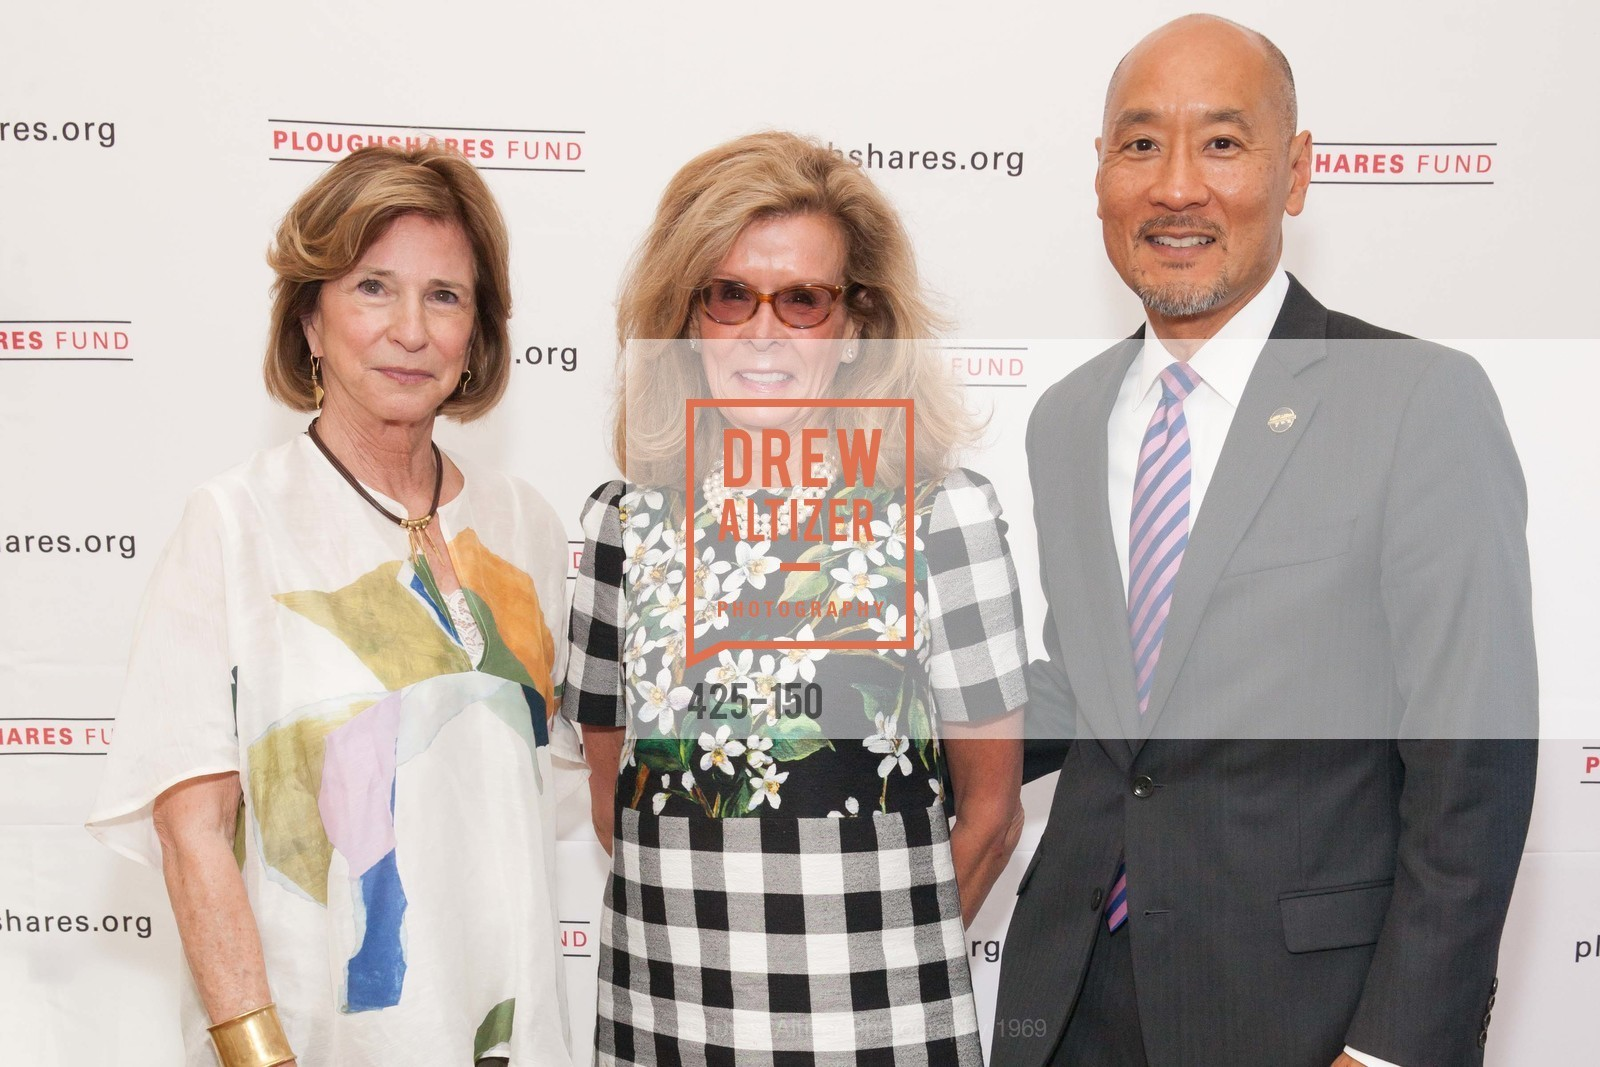 Mary Lloyd Estrin, Lucinda Watson, Philip Yun, Ploughshares Fund Presenting CHAIN REACTION 2015, The Open Square at Futures Without Violence. 100 Montgomery Street, June 7th, 2015,Drew Altizer, Drew Altizer Photography, full-service agency, private events, San Francisco photographer, photographer california